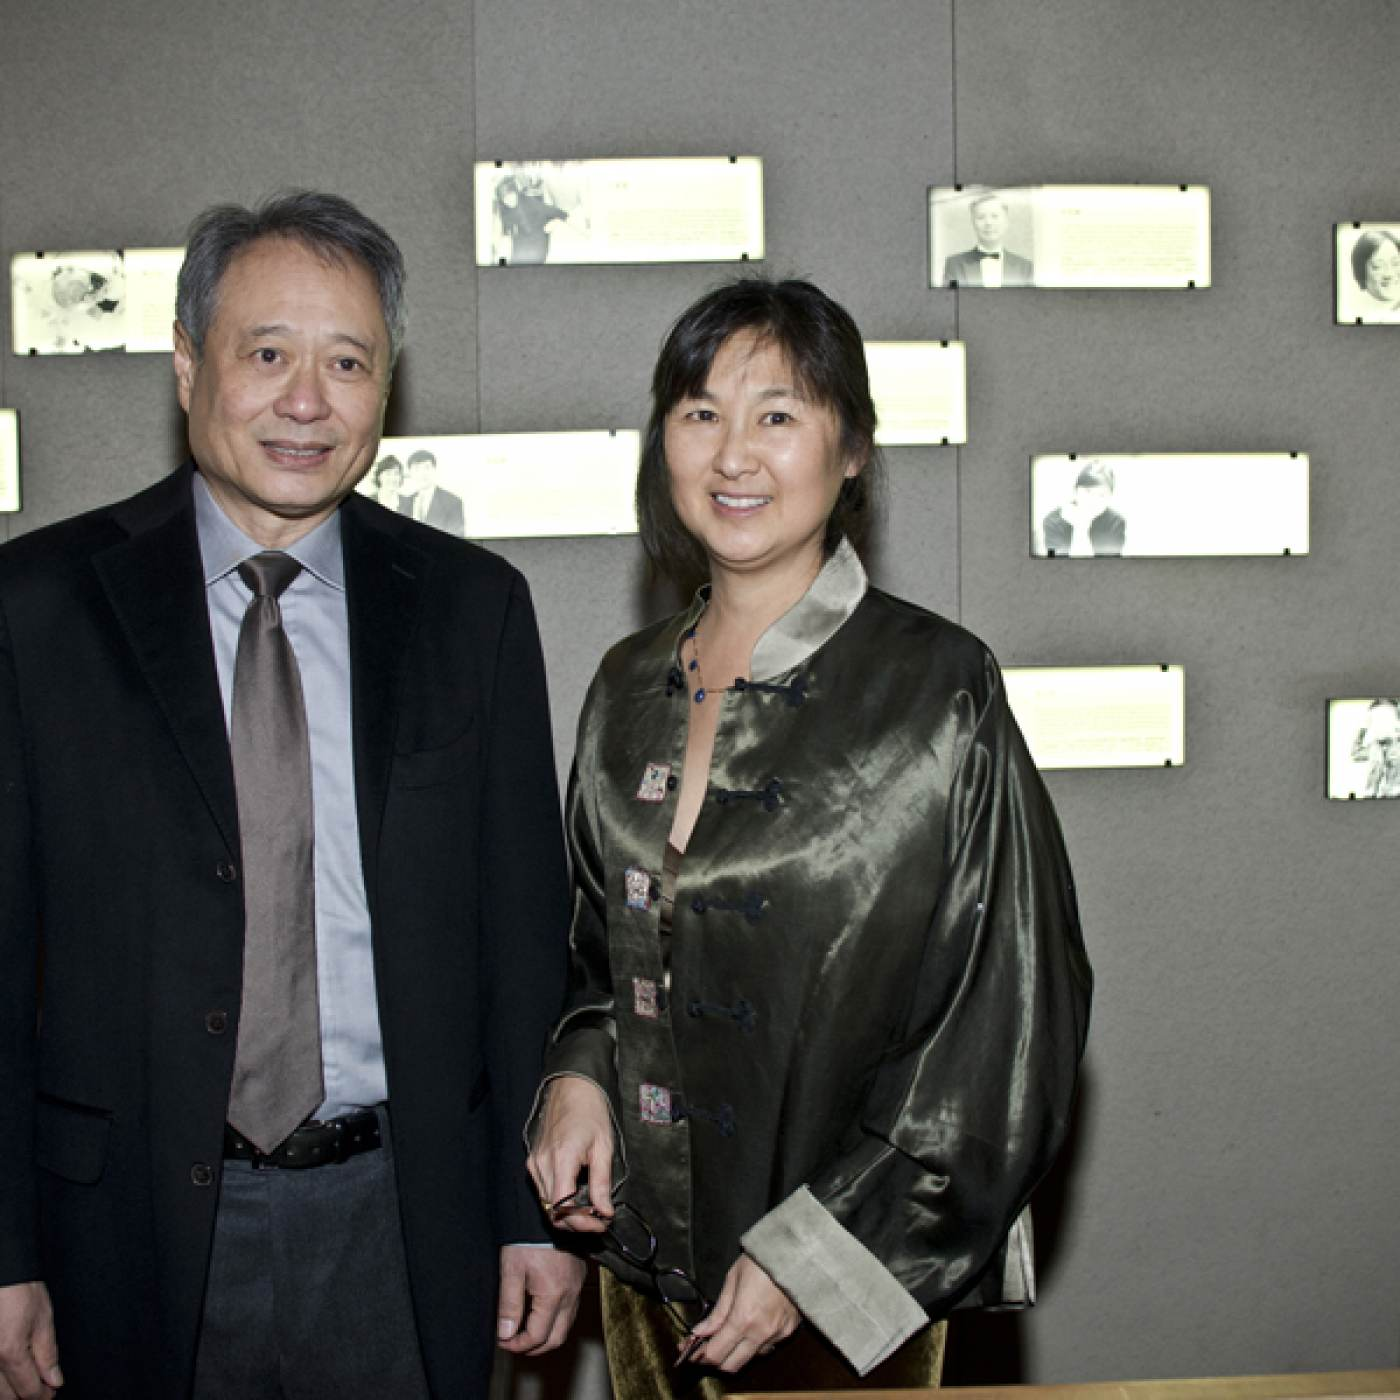 07 June 2019 Posted. Ang Lee and Maya Lin at MOCA's 2014 Lunar New Year Dinner, Museum of Chinese in America (MOCA) Institutional Archives. 李安和林璎在2014年MOCA的农历新年慈善晚宴上,美国华人博物馆(MOCA)机构档案